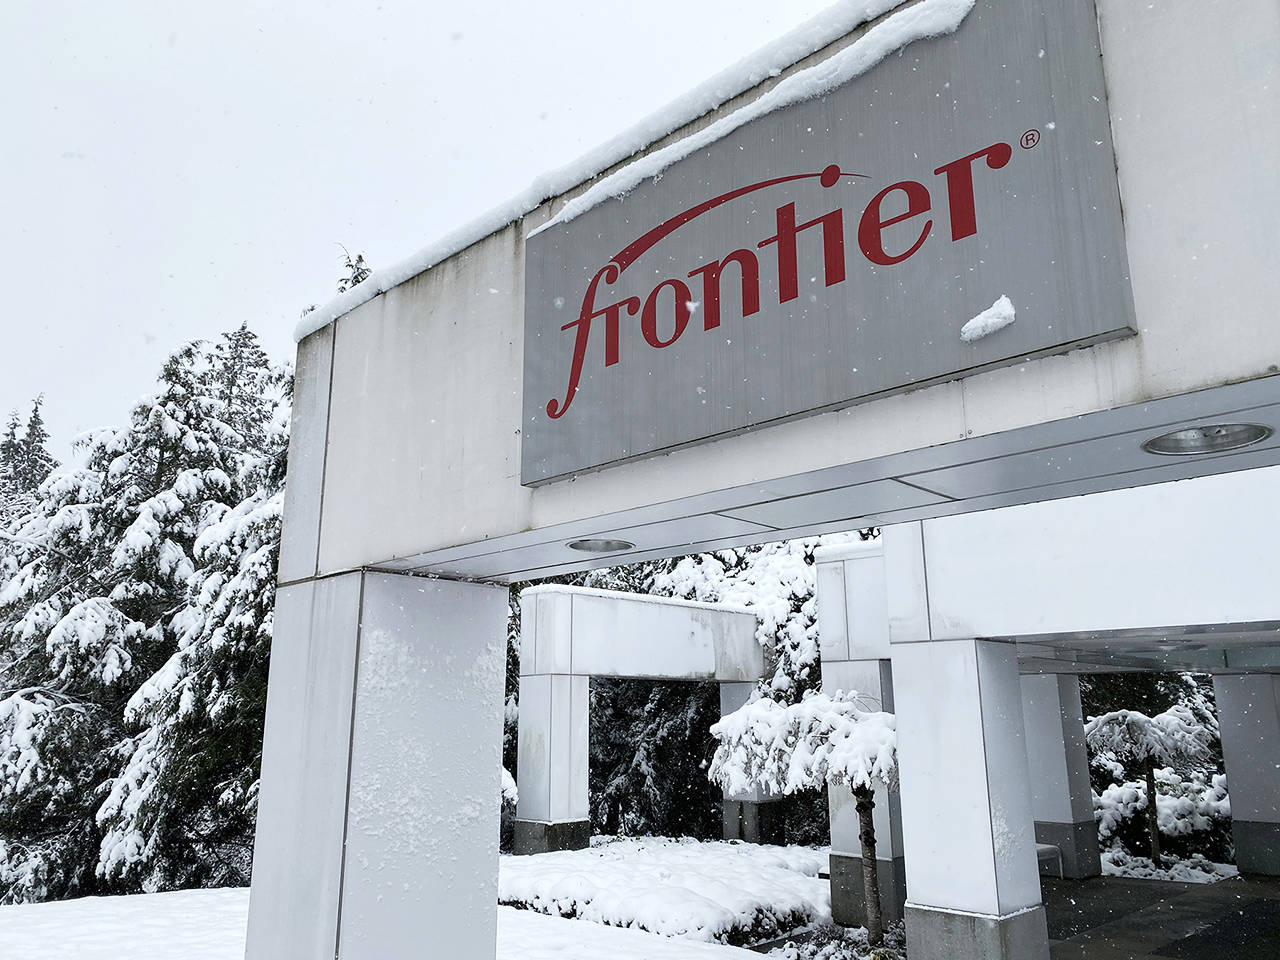 Frontier Communications has its Western Washington headquarters in Everett. (Sue Misao / The Herald)